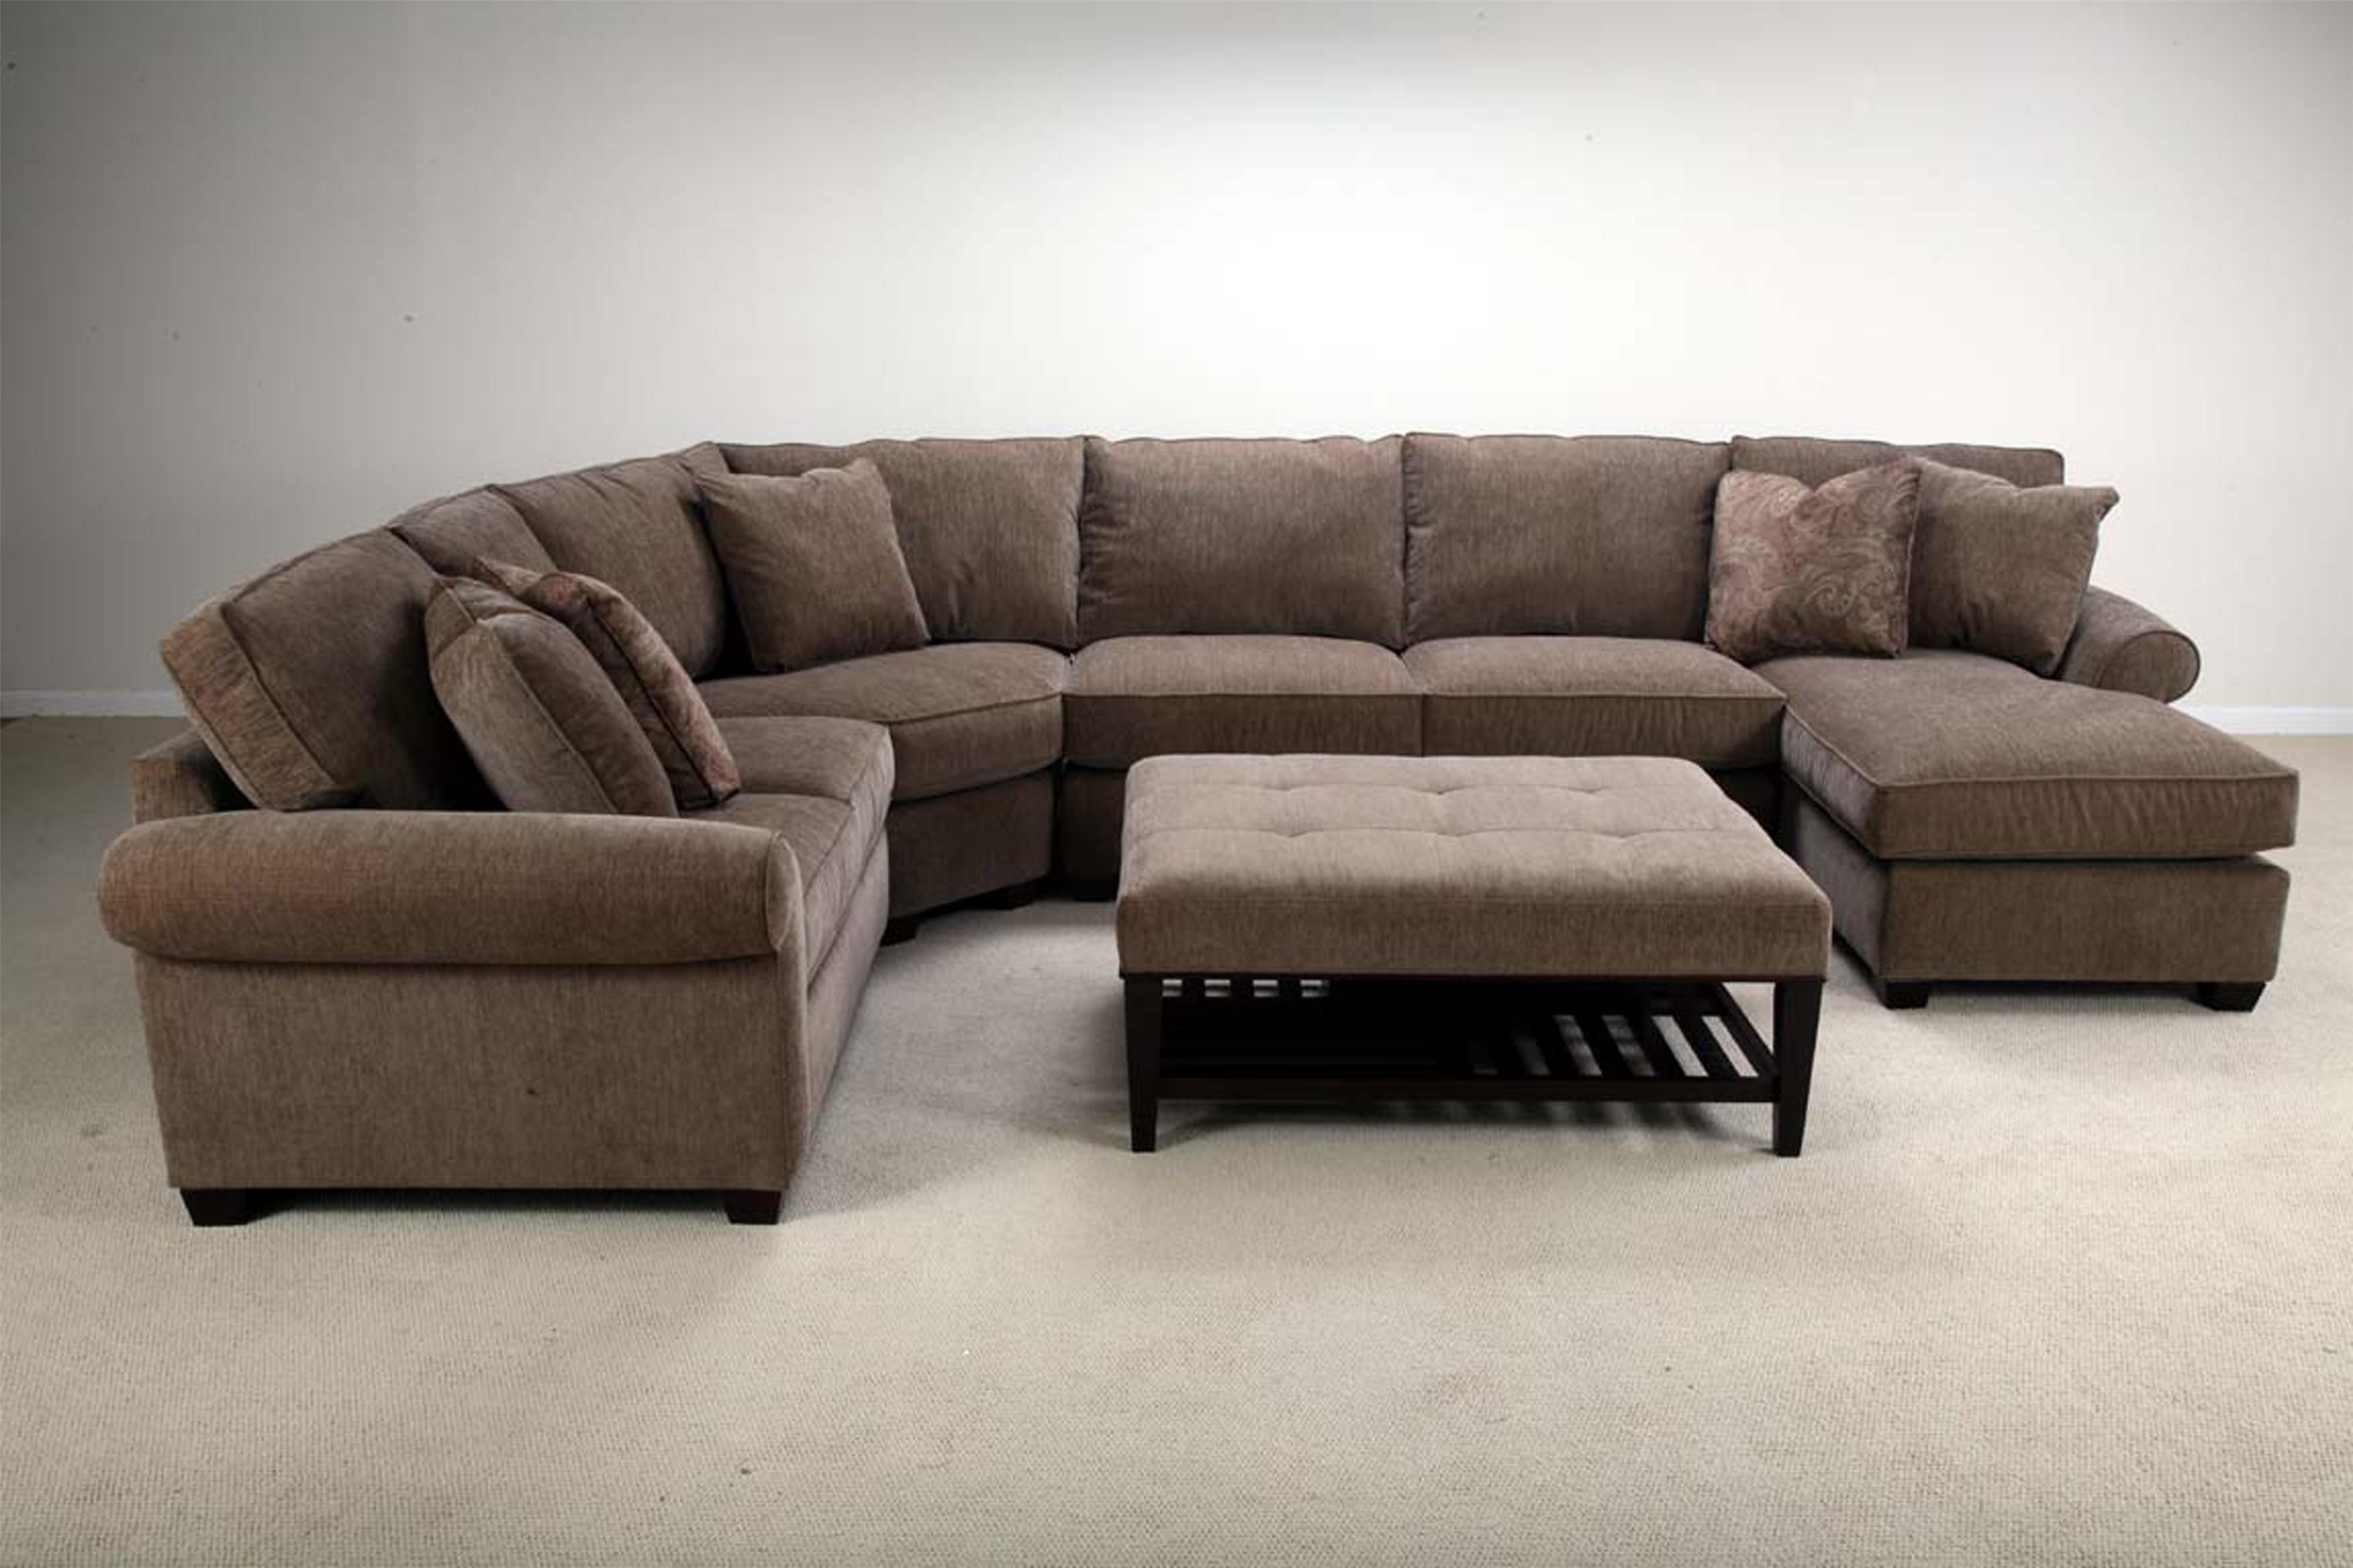 Bauhaus Furniture Sectional Sofa : bauhaus sectional couch - Sectionals, Sofas & Couches